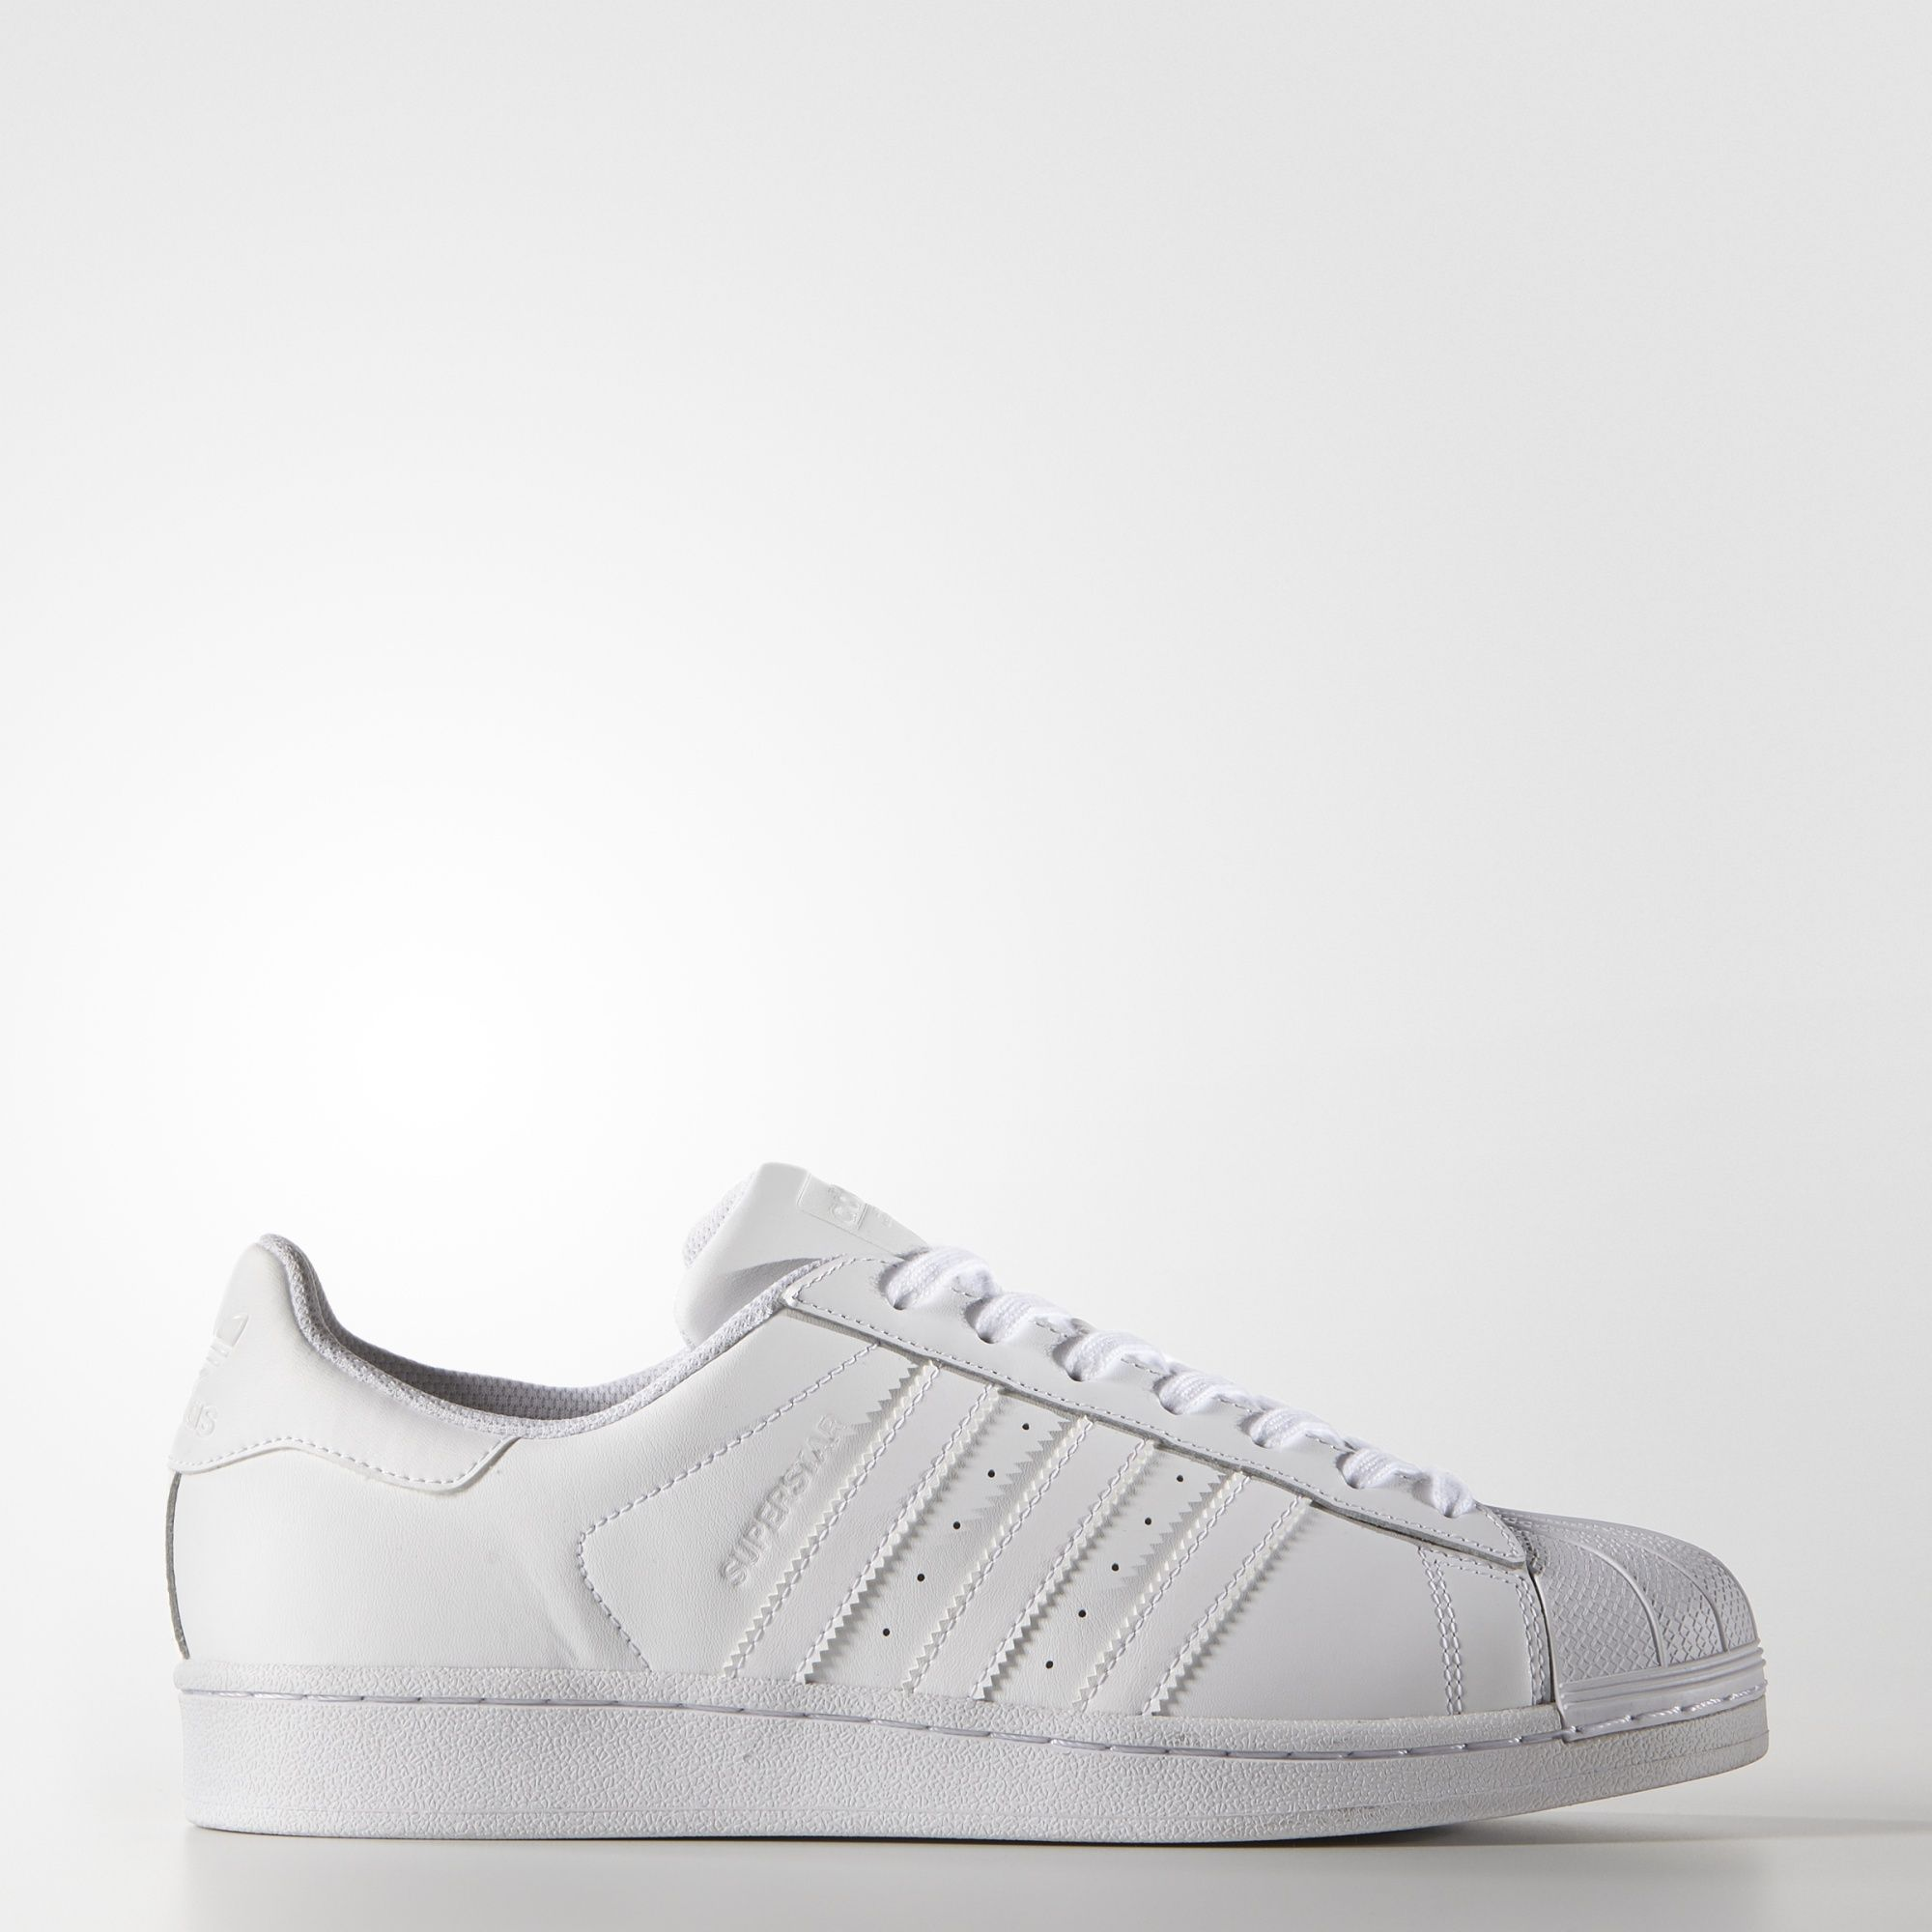 Autor florero rizo  adidas Superstar Shoes - White | adidas US | Adidas shoes superstar, Adidas  superstar white, Adidas superstar